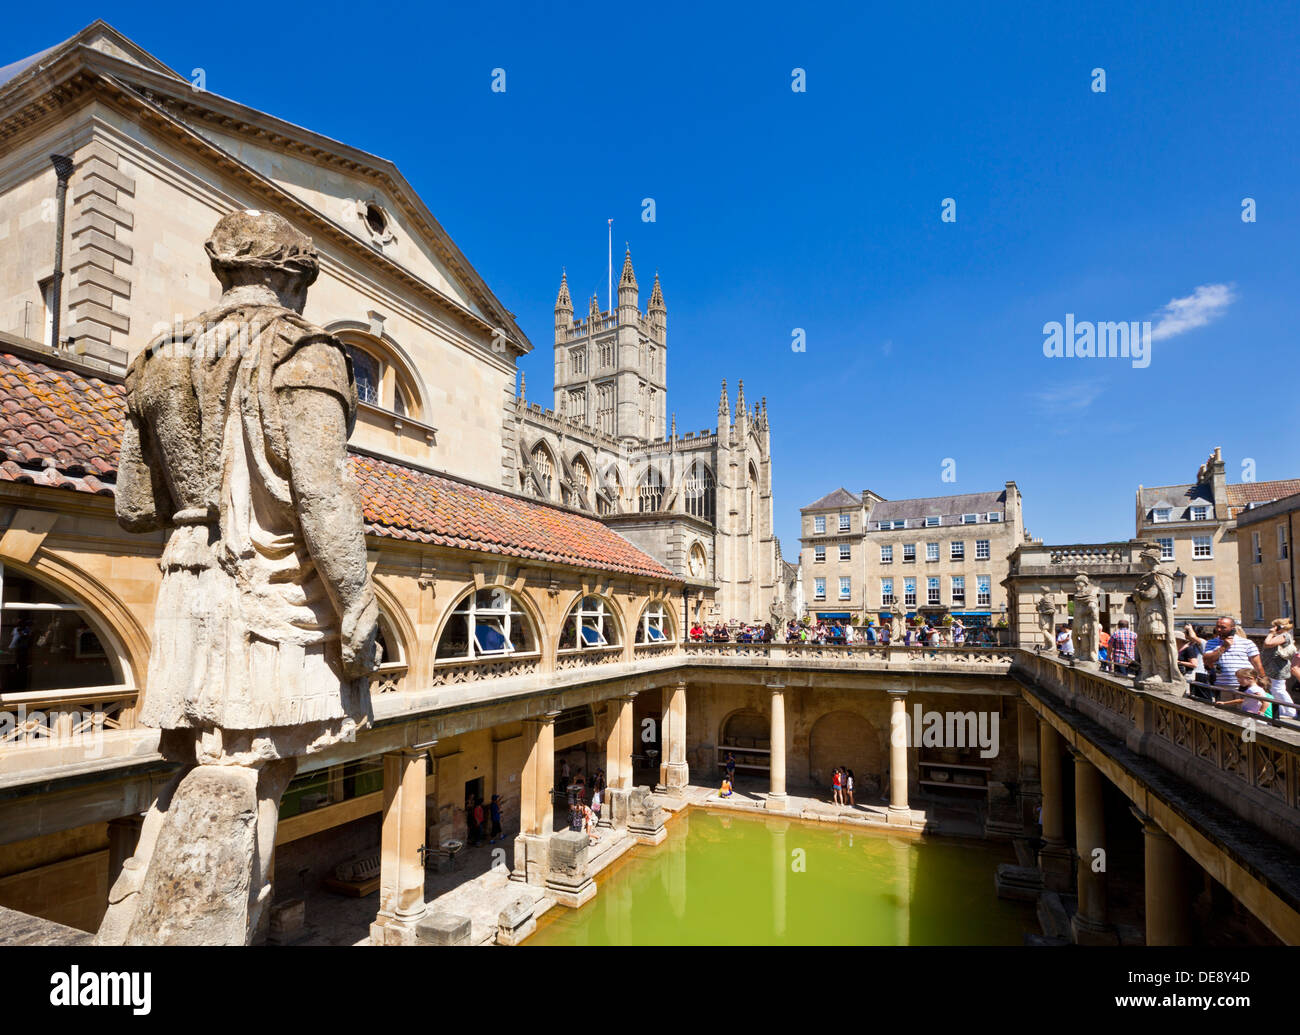 The Roman Baths, the great bath, the only hot springs in the UK, Bath city centre north east Somerset England UK GB EU Europe - Stock Image